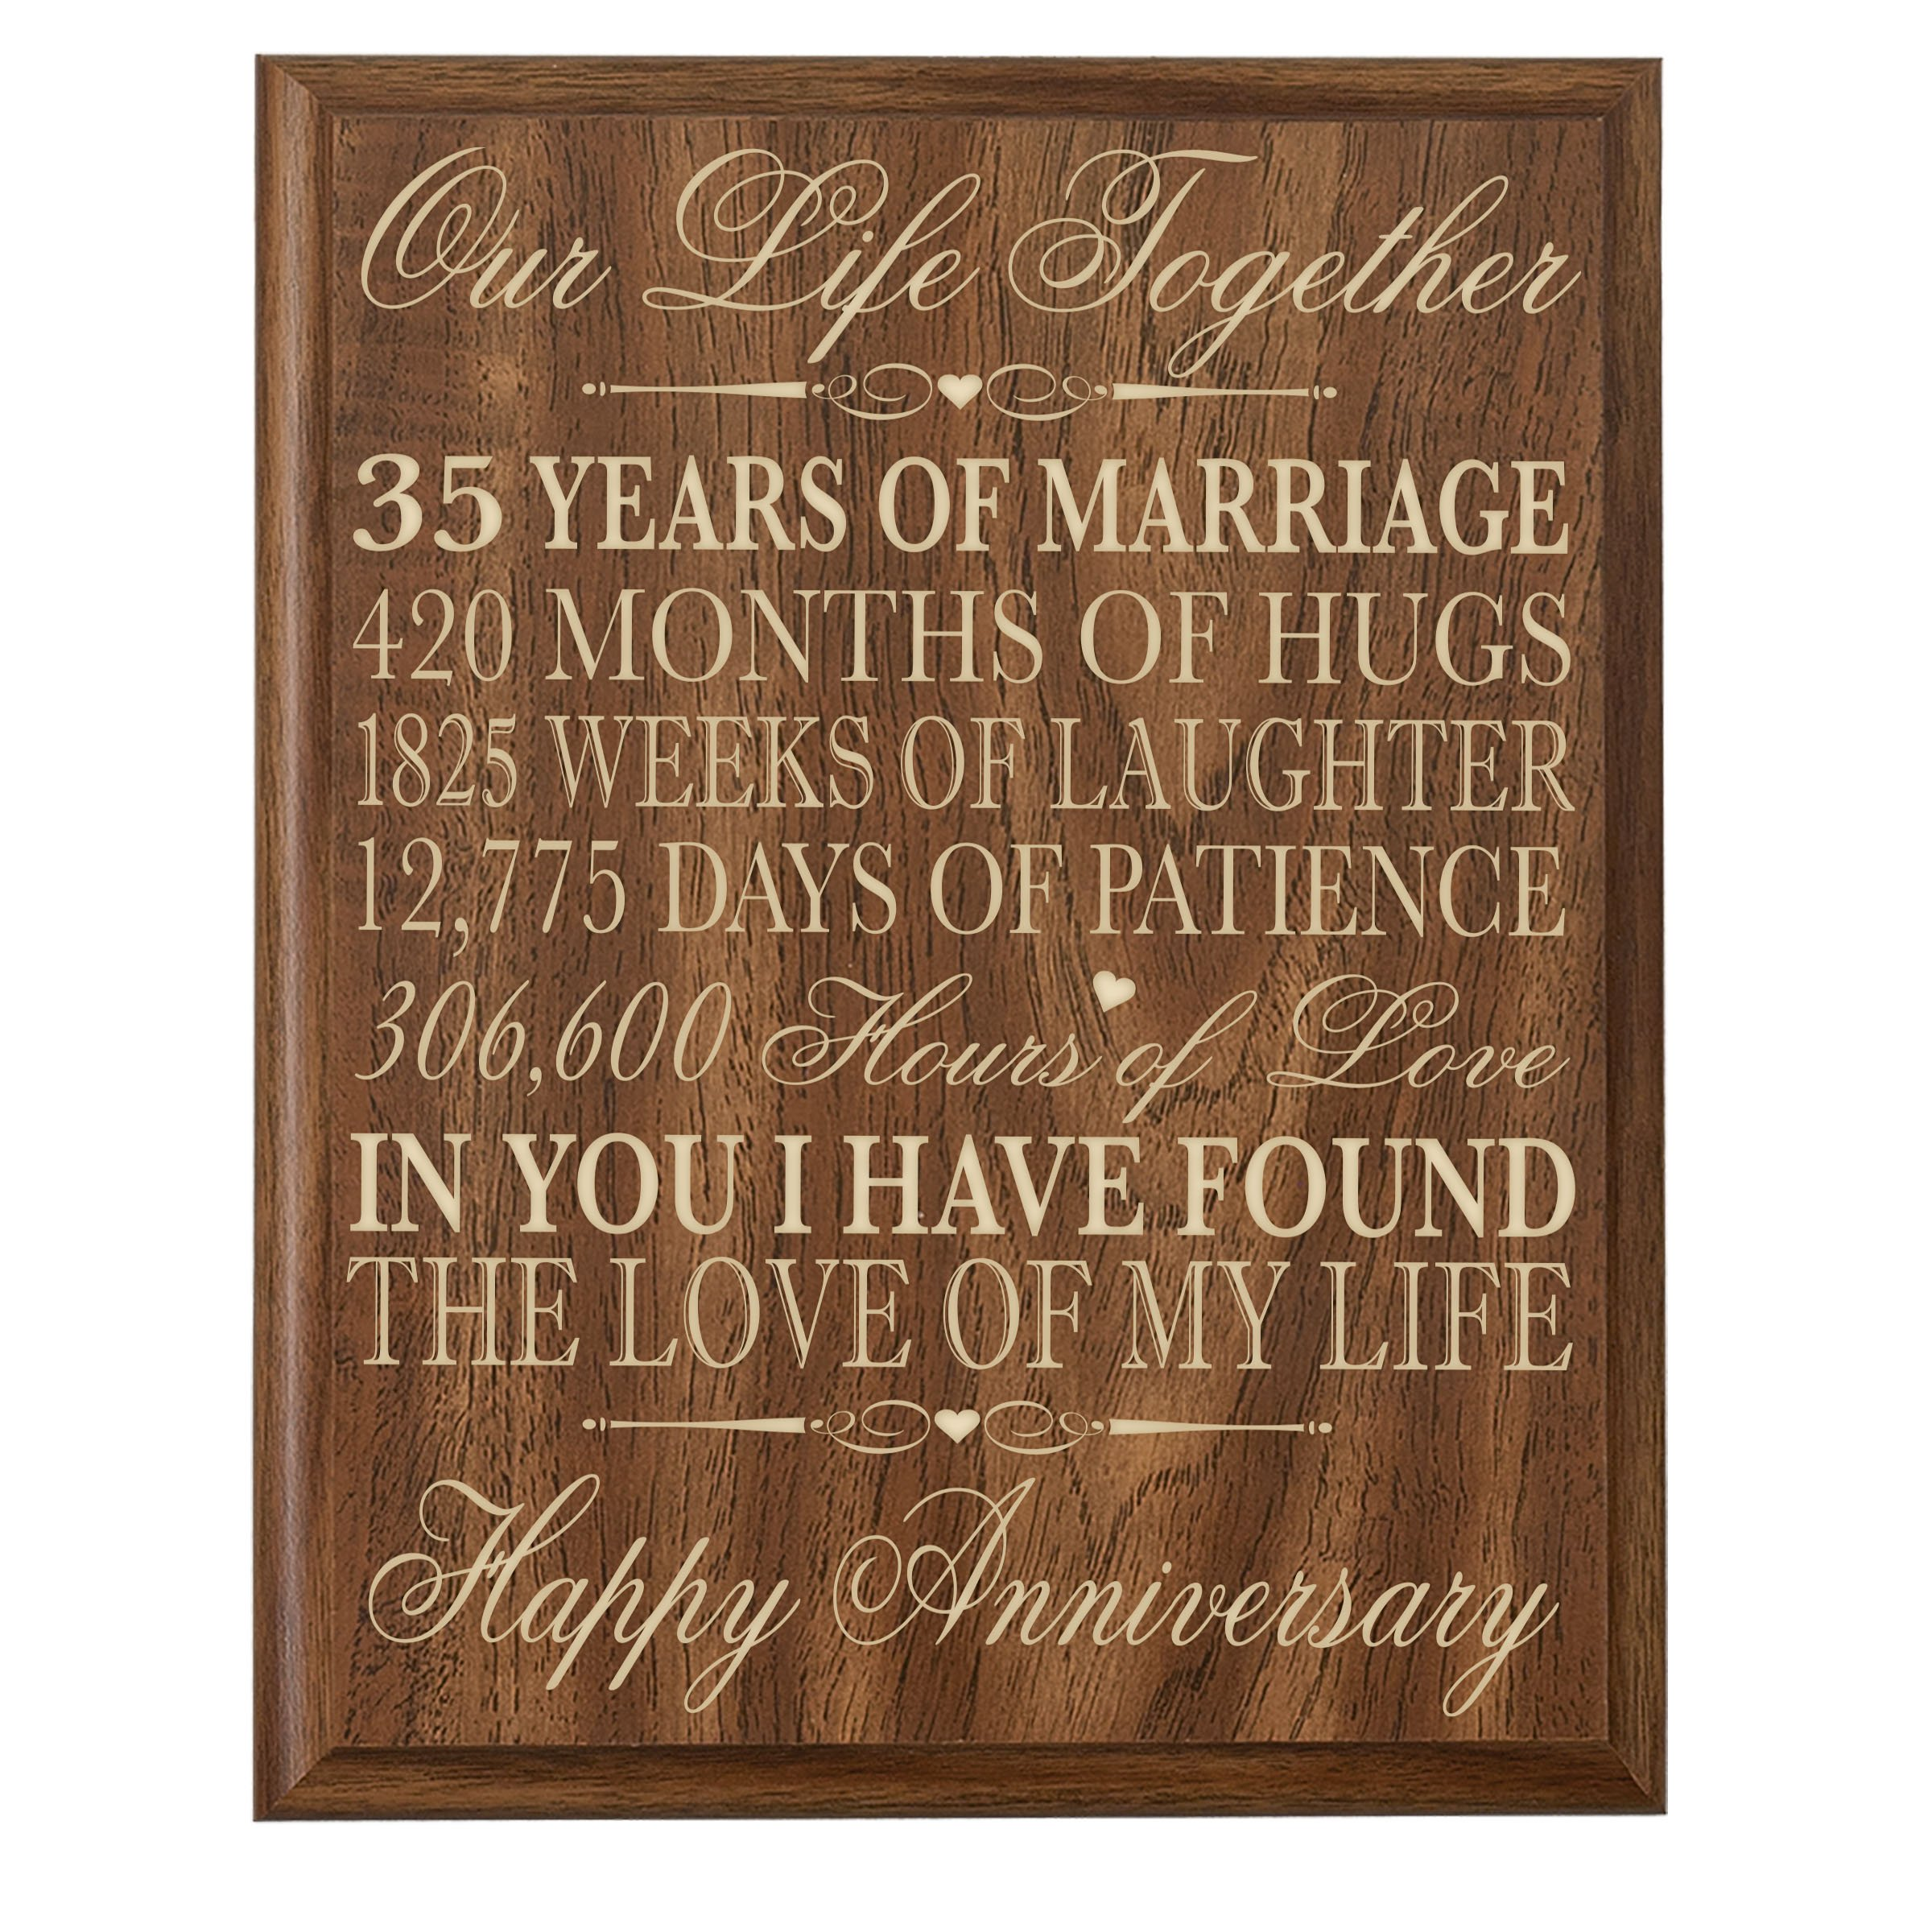 The 35 Best Wedding Gifts Of 2020: 35 Year Anniversary Gift: Amazon.com